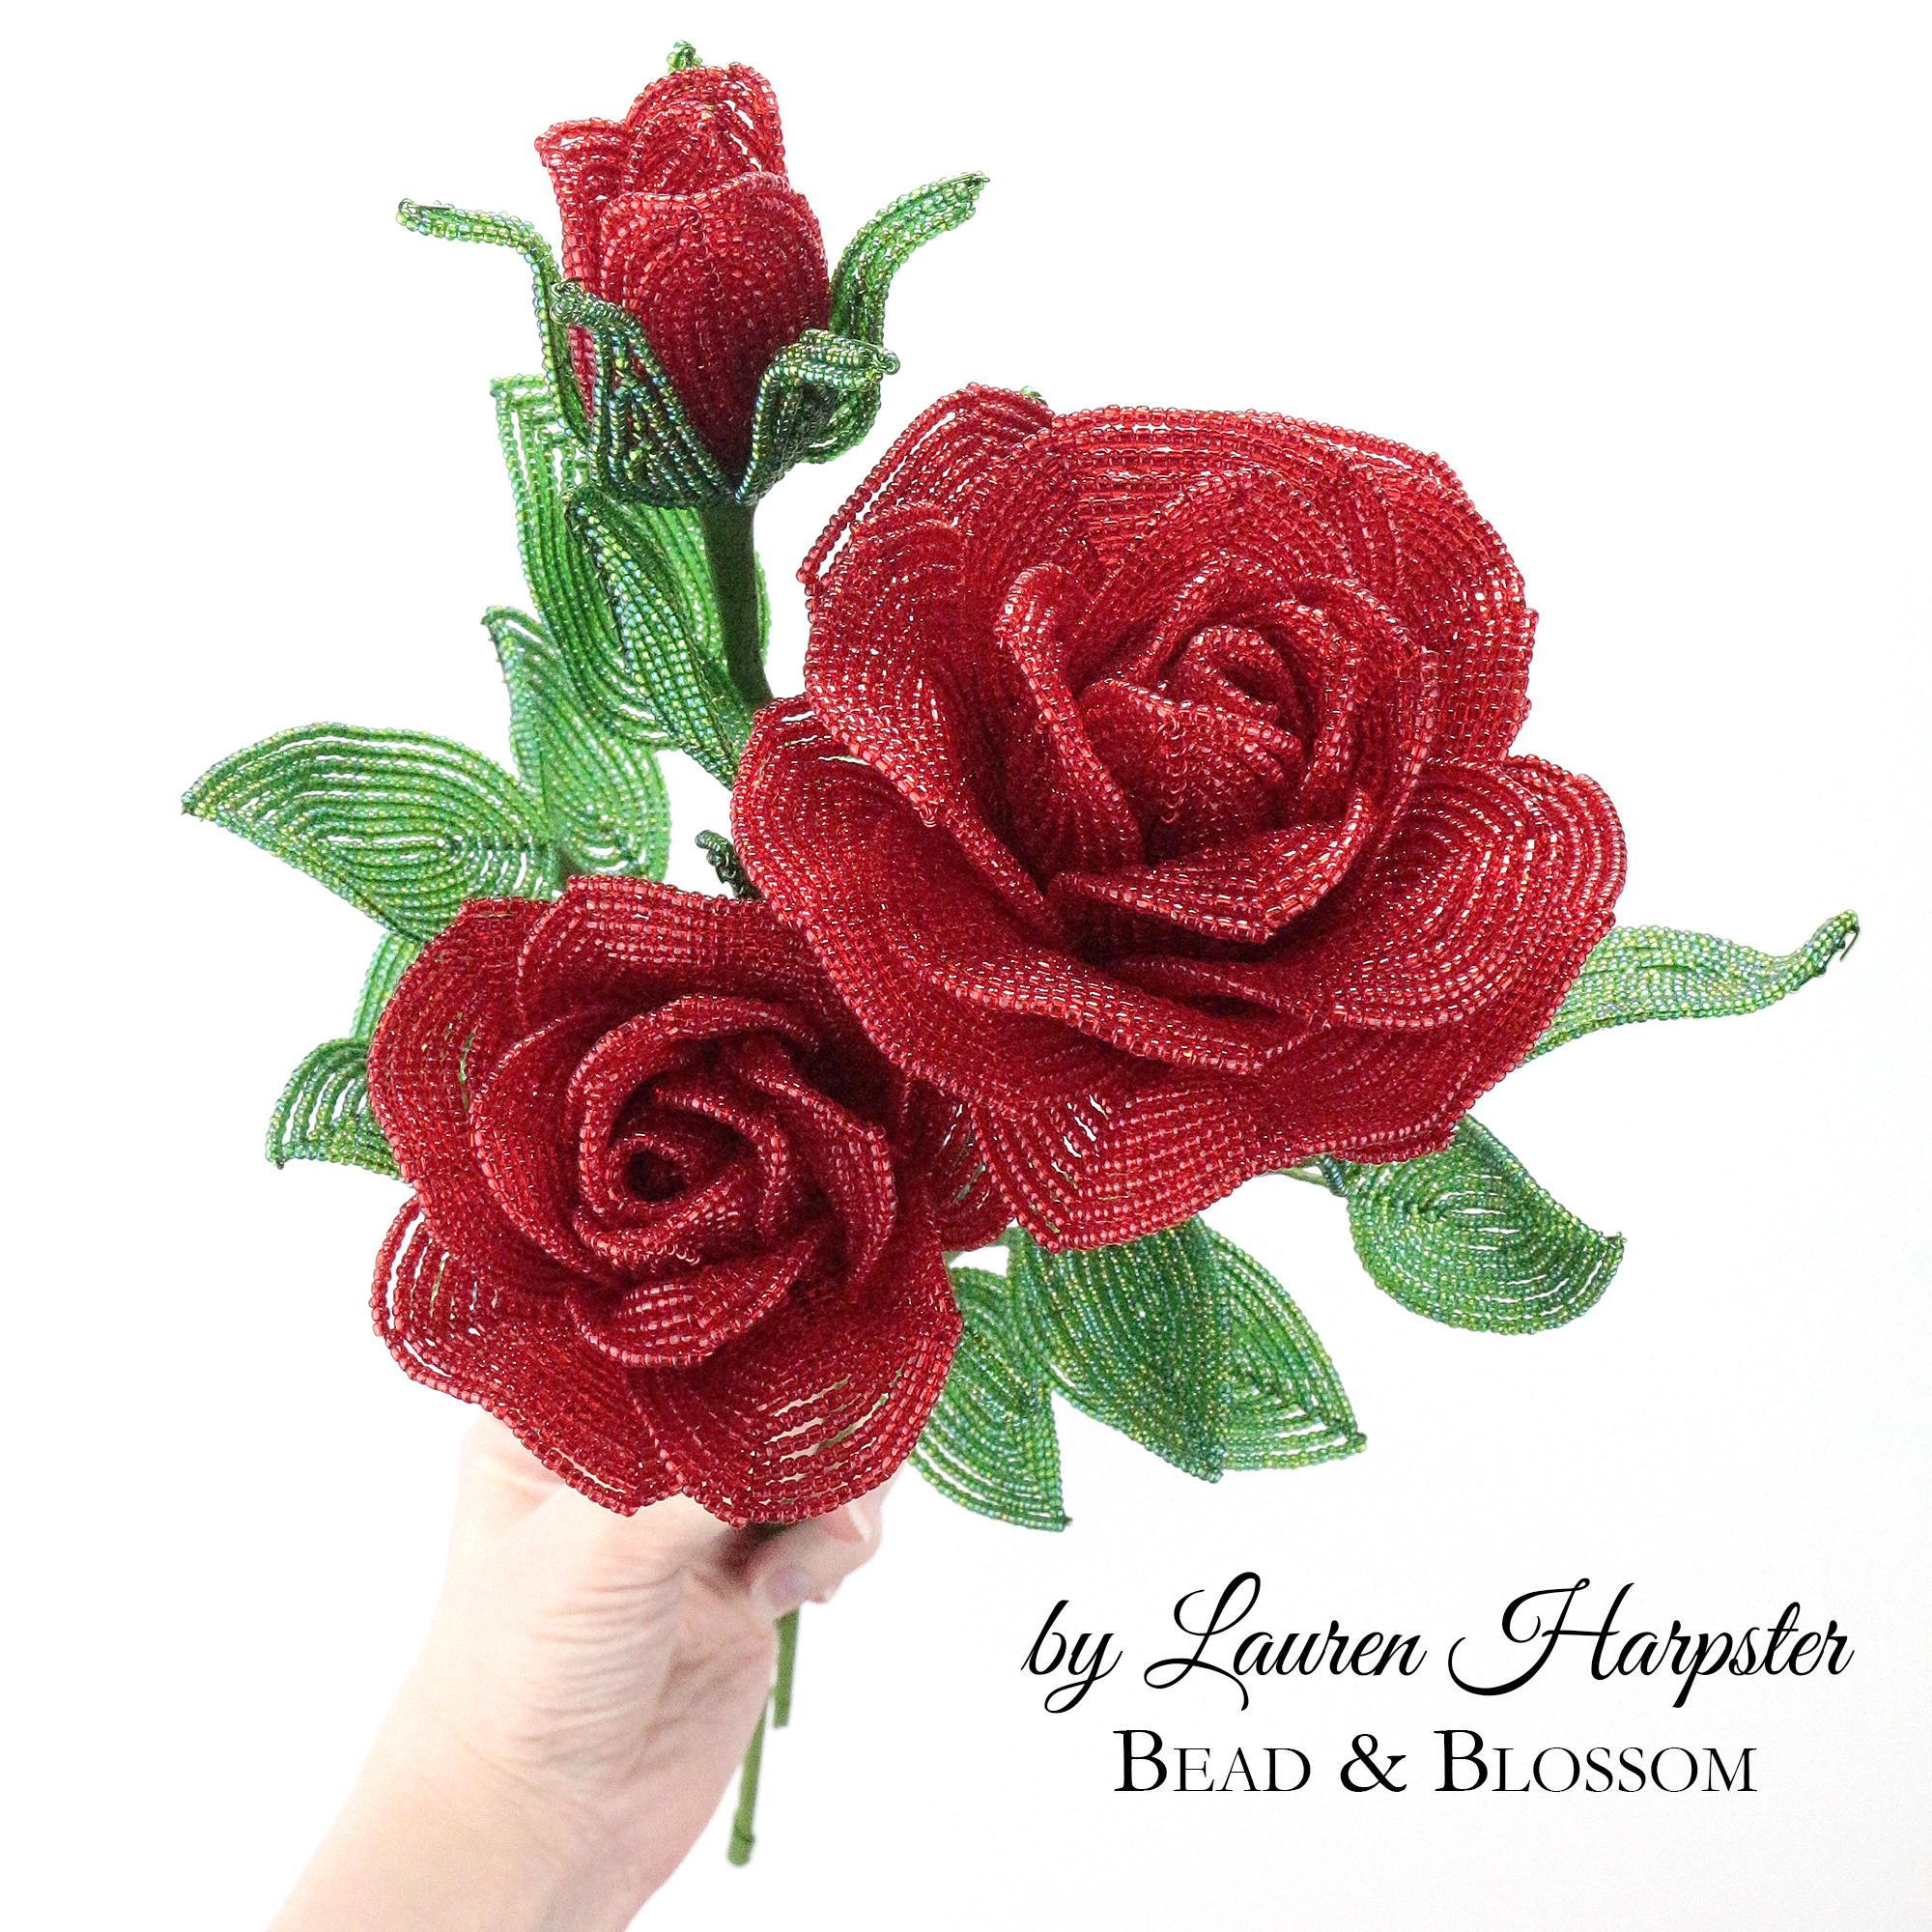 French Beaded Rose Pattern by Lauren Harpster from Bead and Blossom